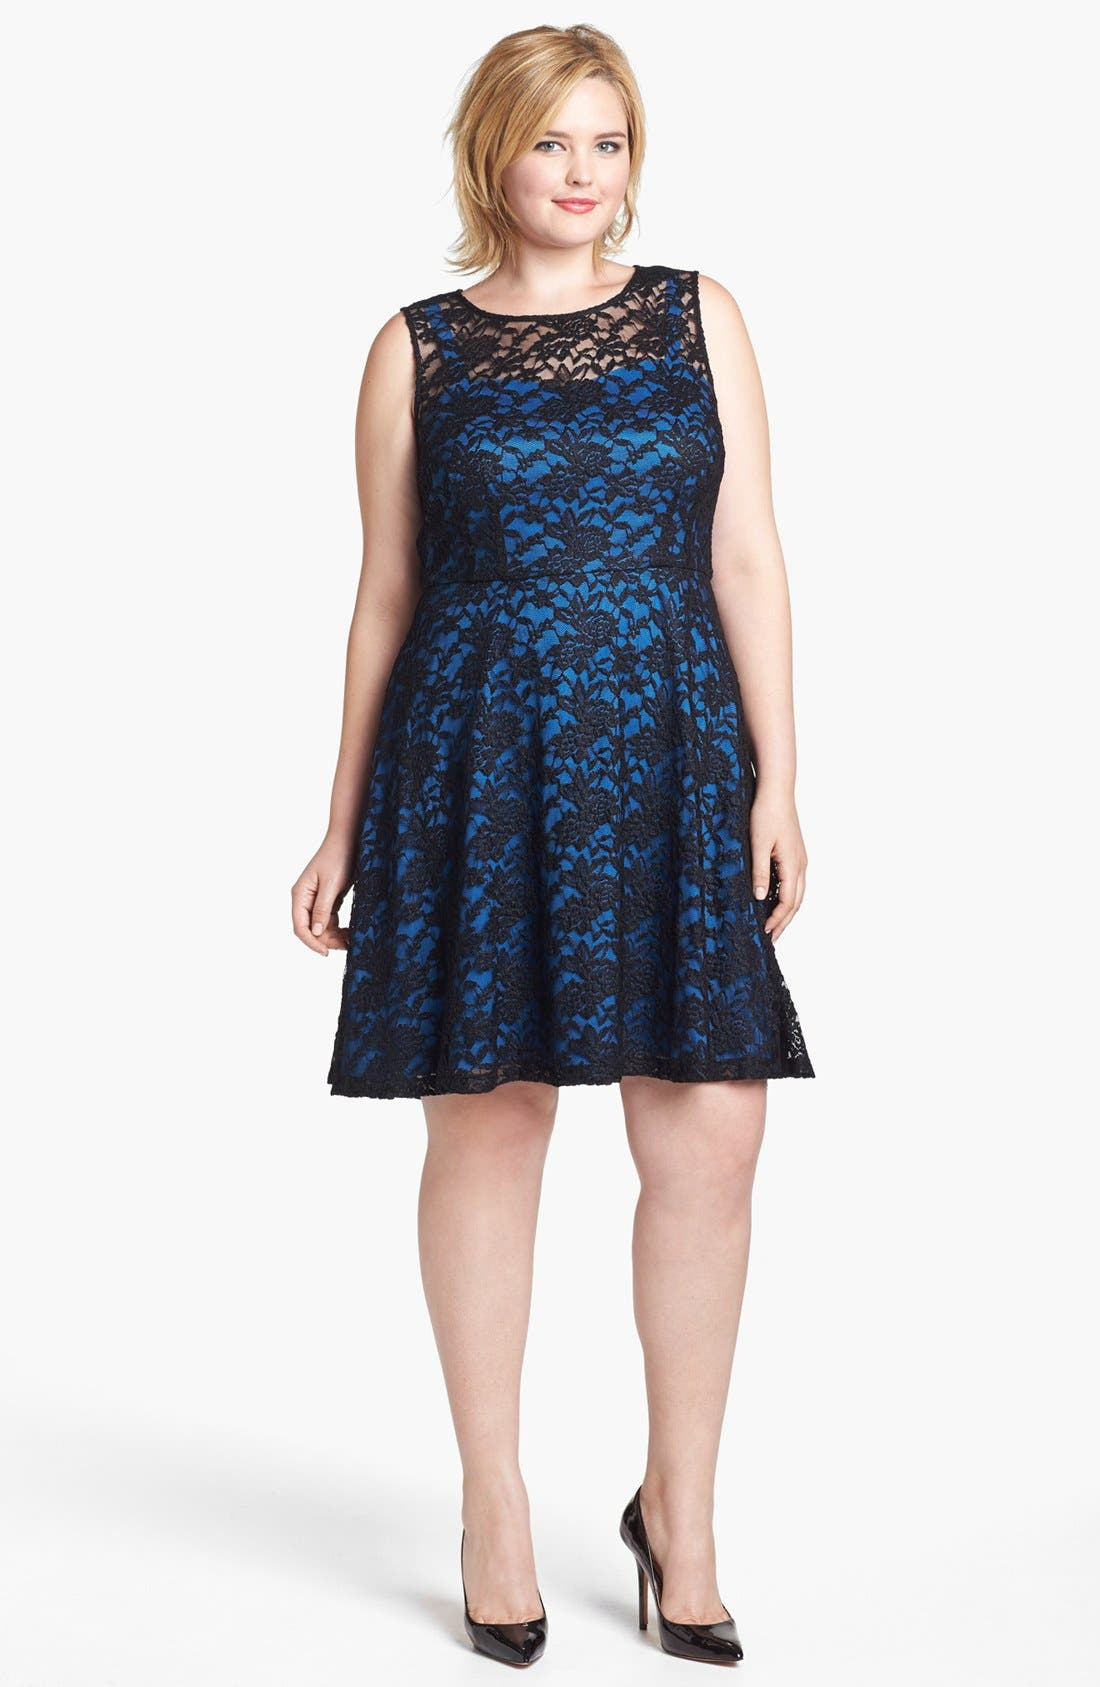 Alternate Image 1 Selected - Ivy & Blu Lace Fit & Flare Dress (Plus Size)